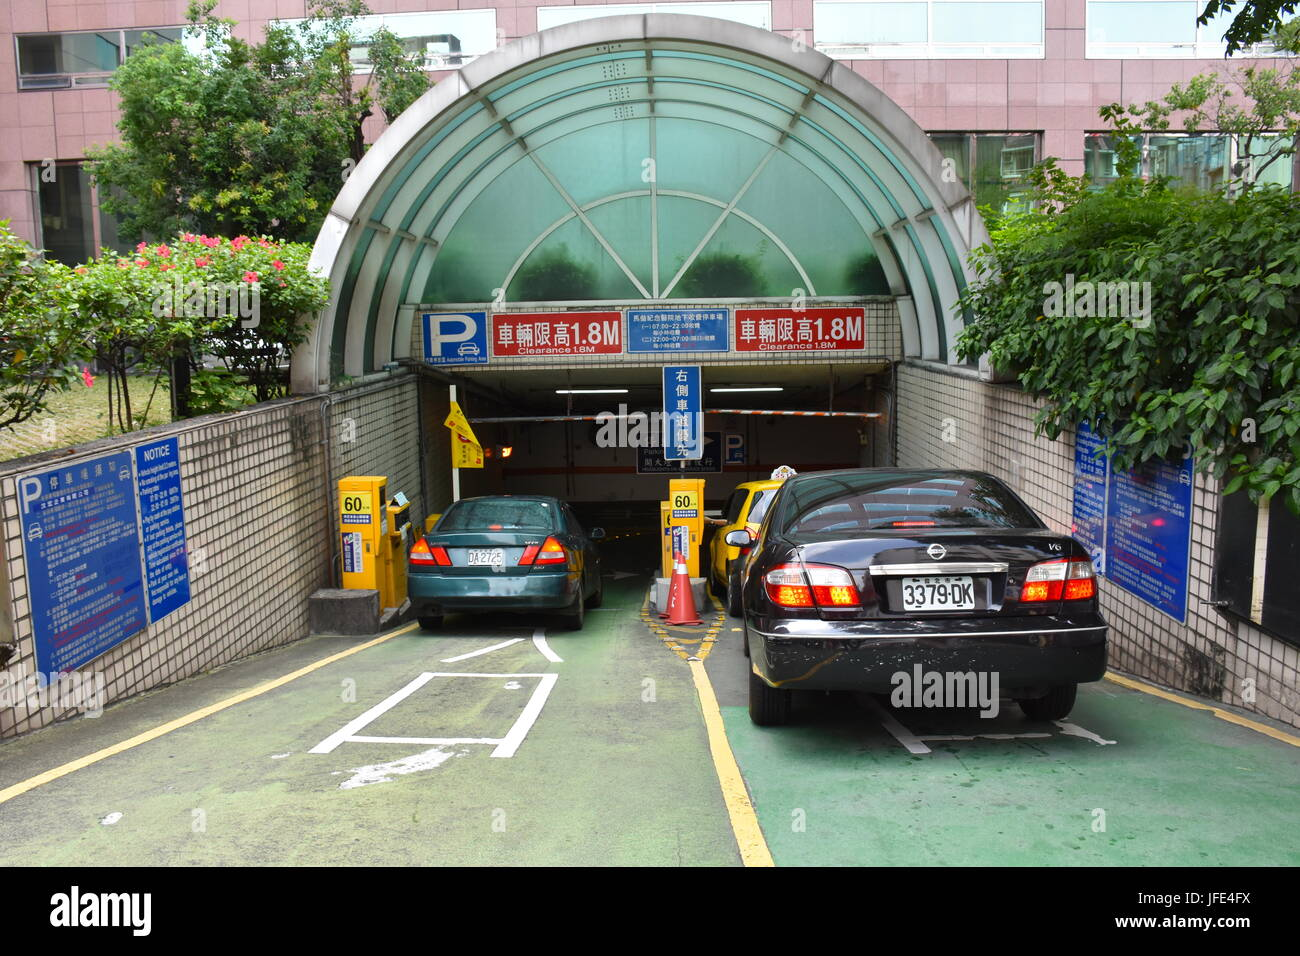 This is underground paid parking at Mackay Hospital in Taipei, Taiwan. Parking is scares and expensive. - Stock Image